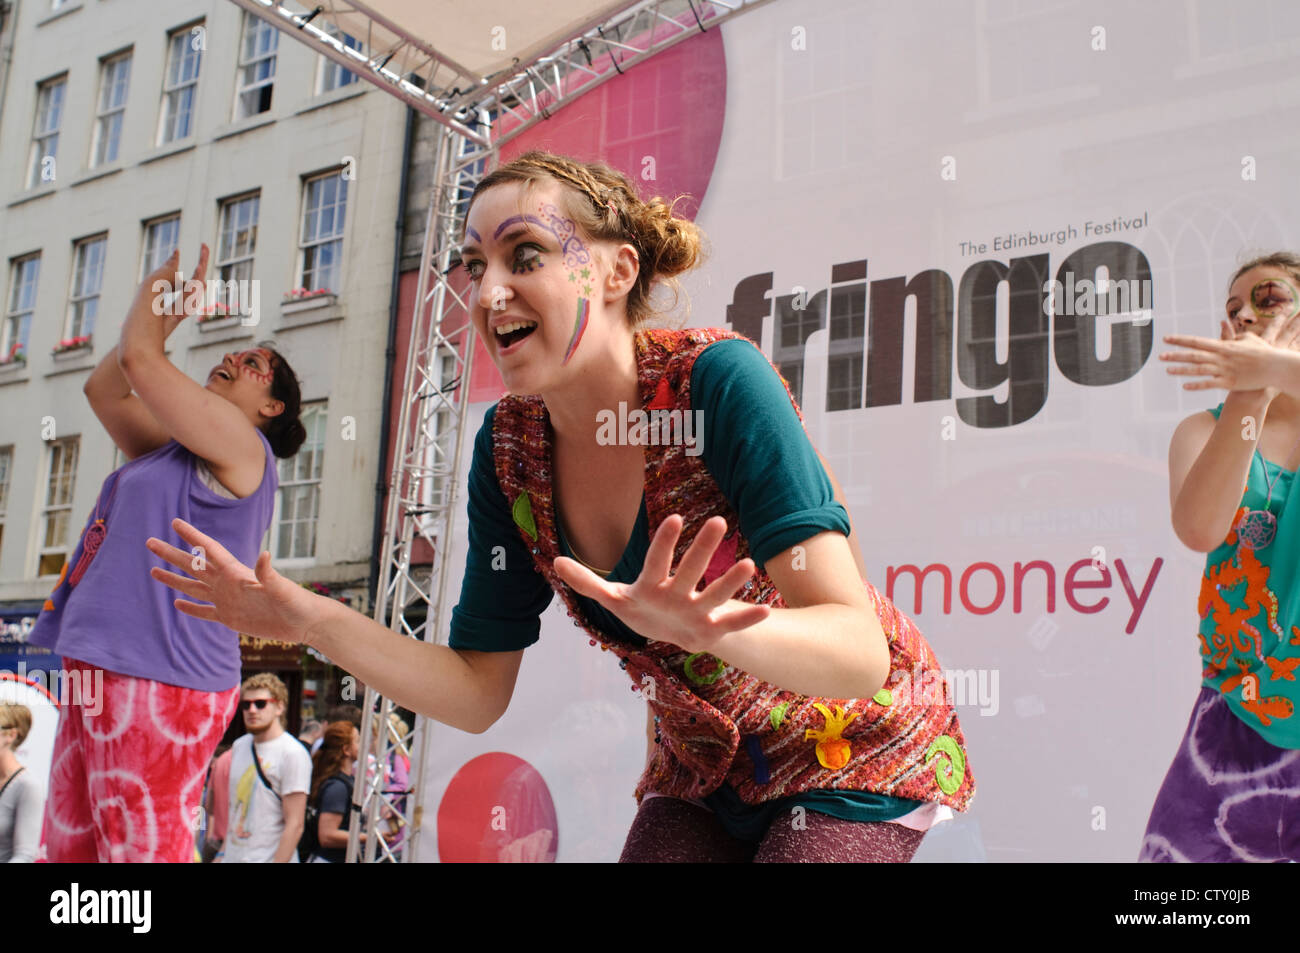 Performers on The Royal Mile promoting their shows for the Edinburgh Festival Fringe. - Stock Image